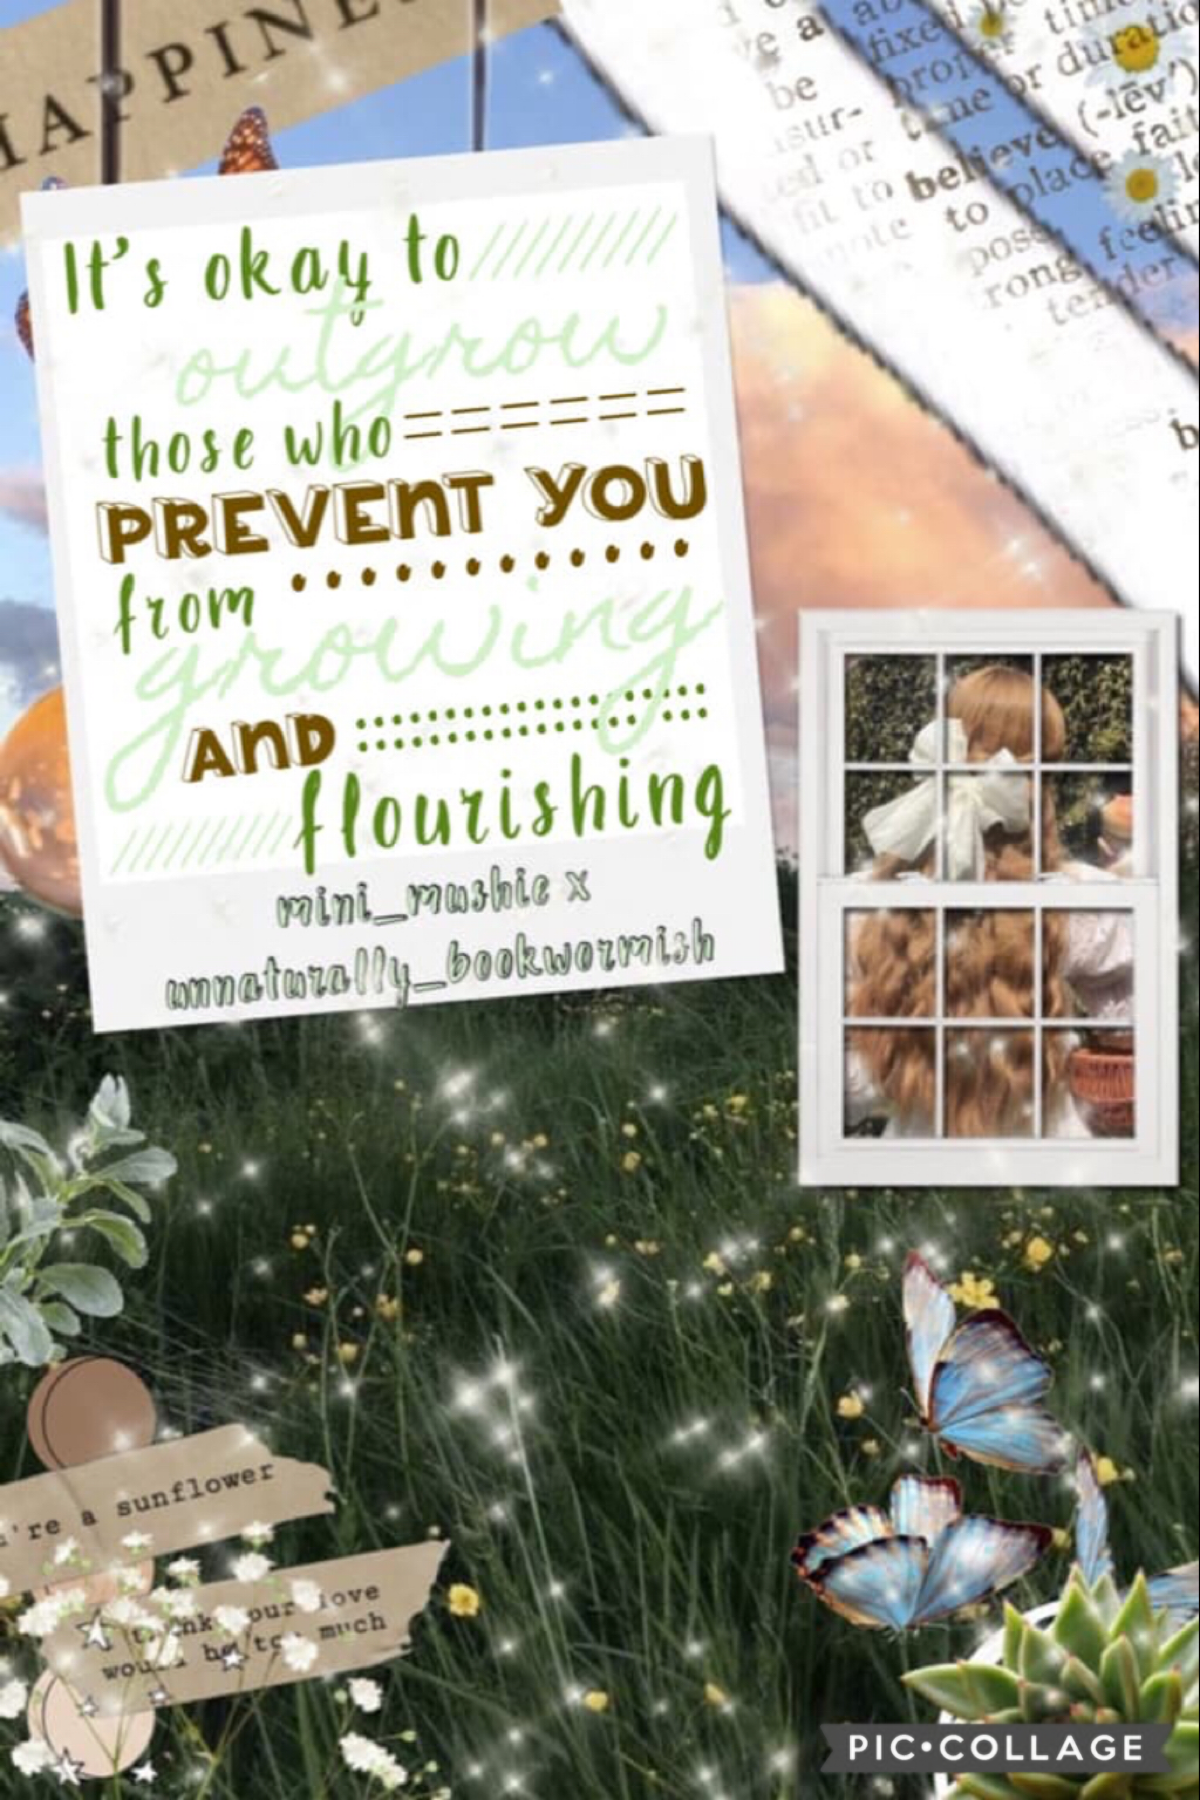 🌱Tap!🌱 Good morning y'all! I will be doing a lot of inactivity, sorry! But here's my collab collage with the amazing unnaturally_bookwormish! I did the bg and they did the gorgeous text!